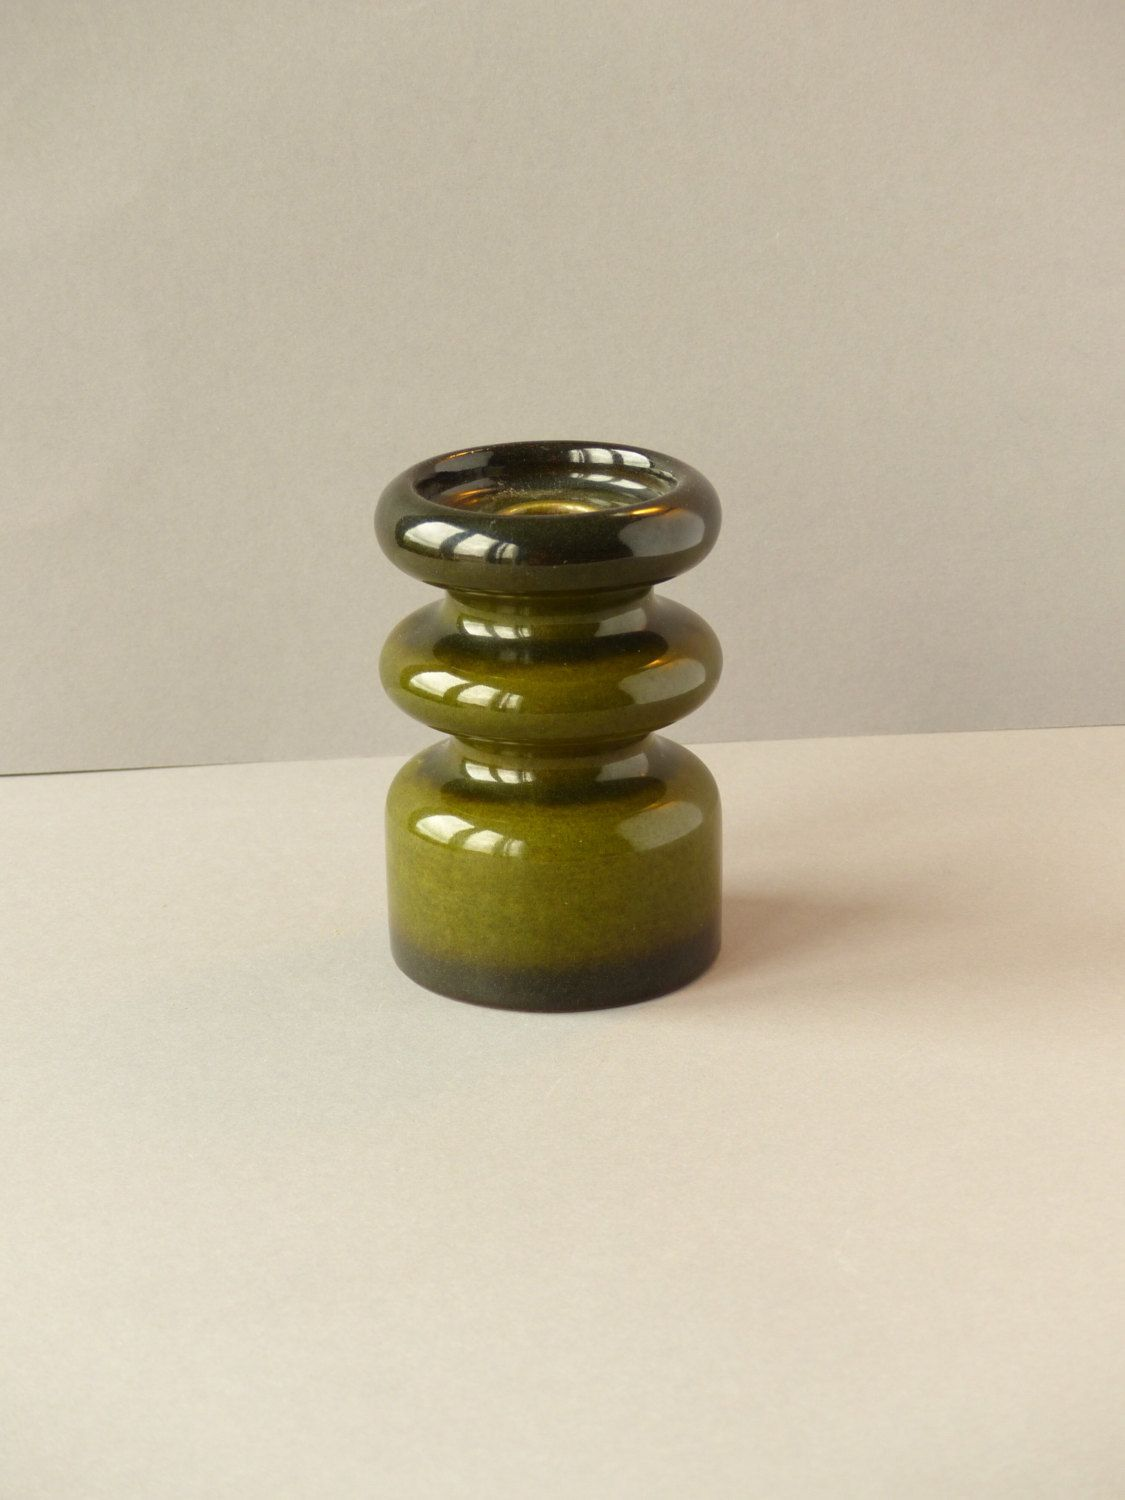 Vintage Design Kandelaar.Vintage Design Candle Holder By Steuler West Germany